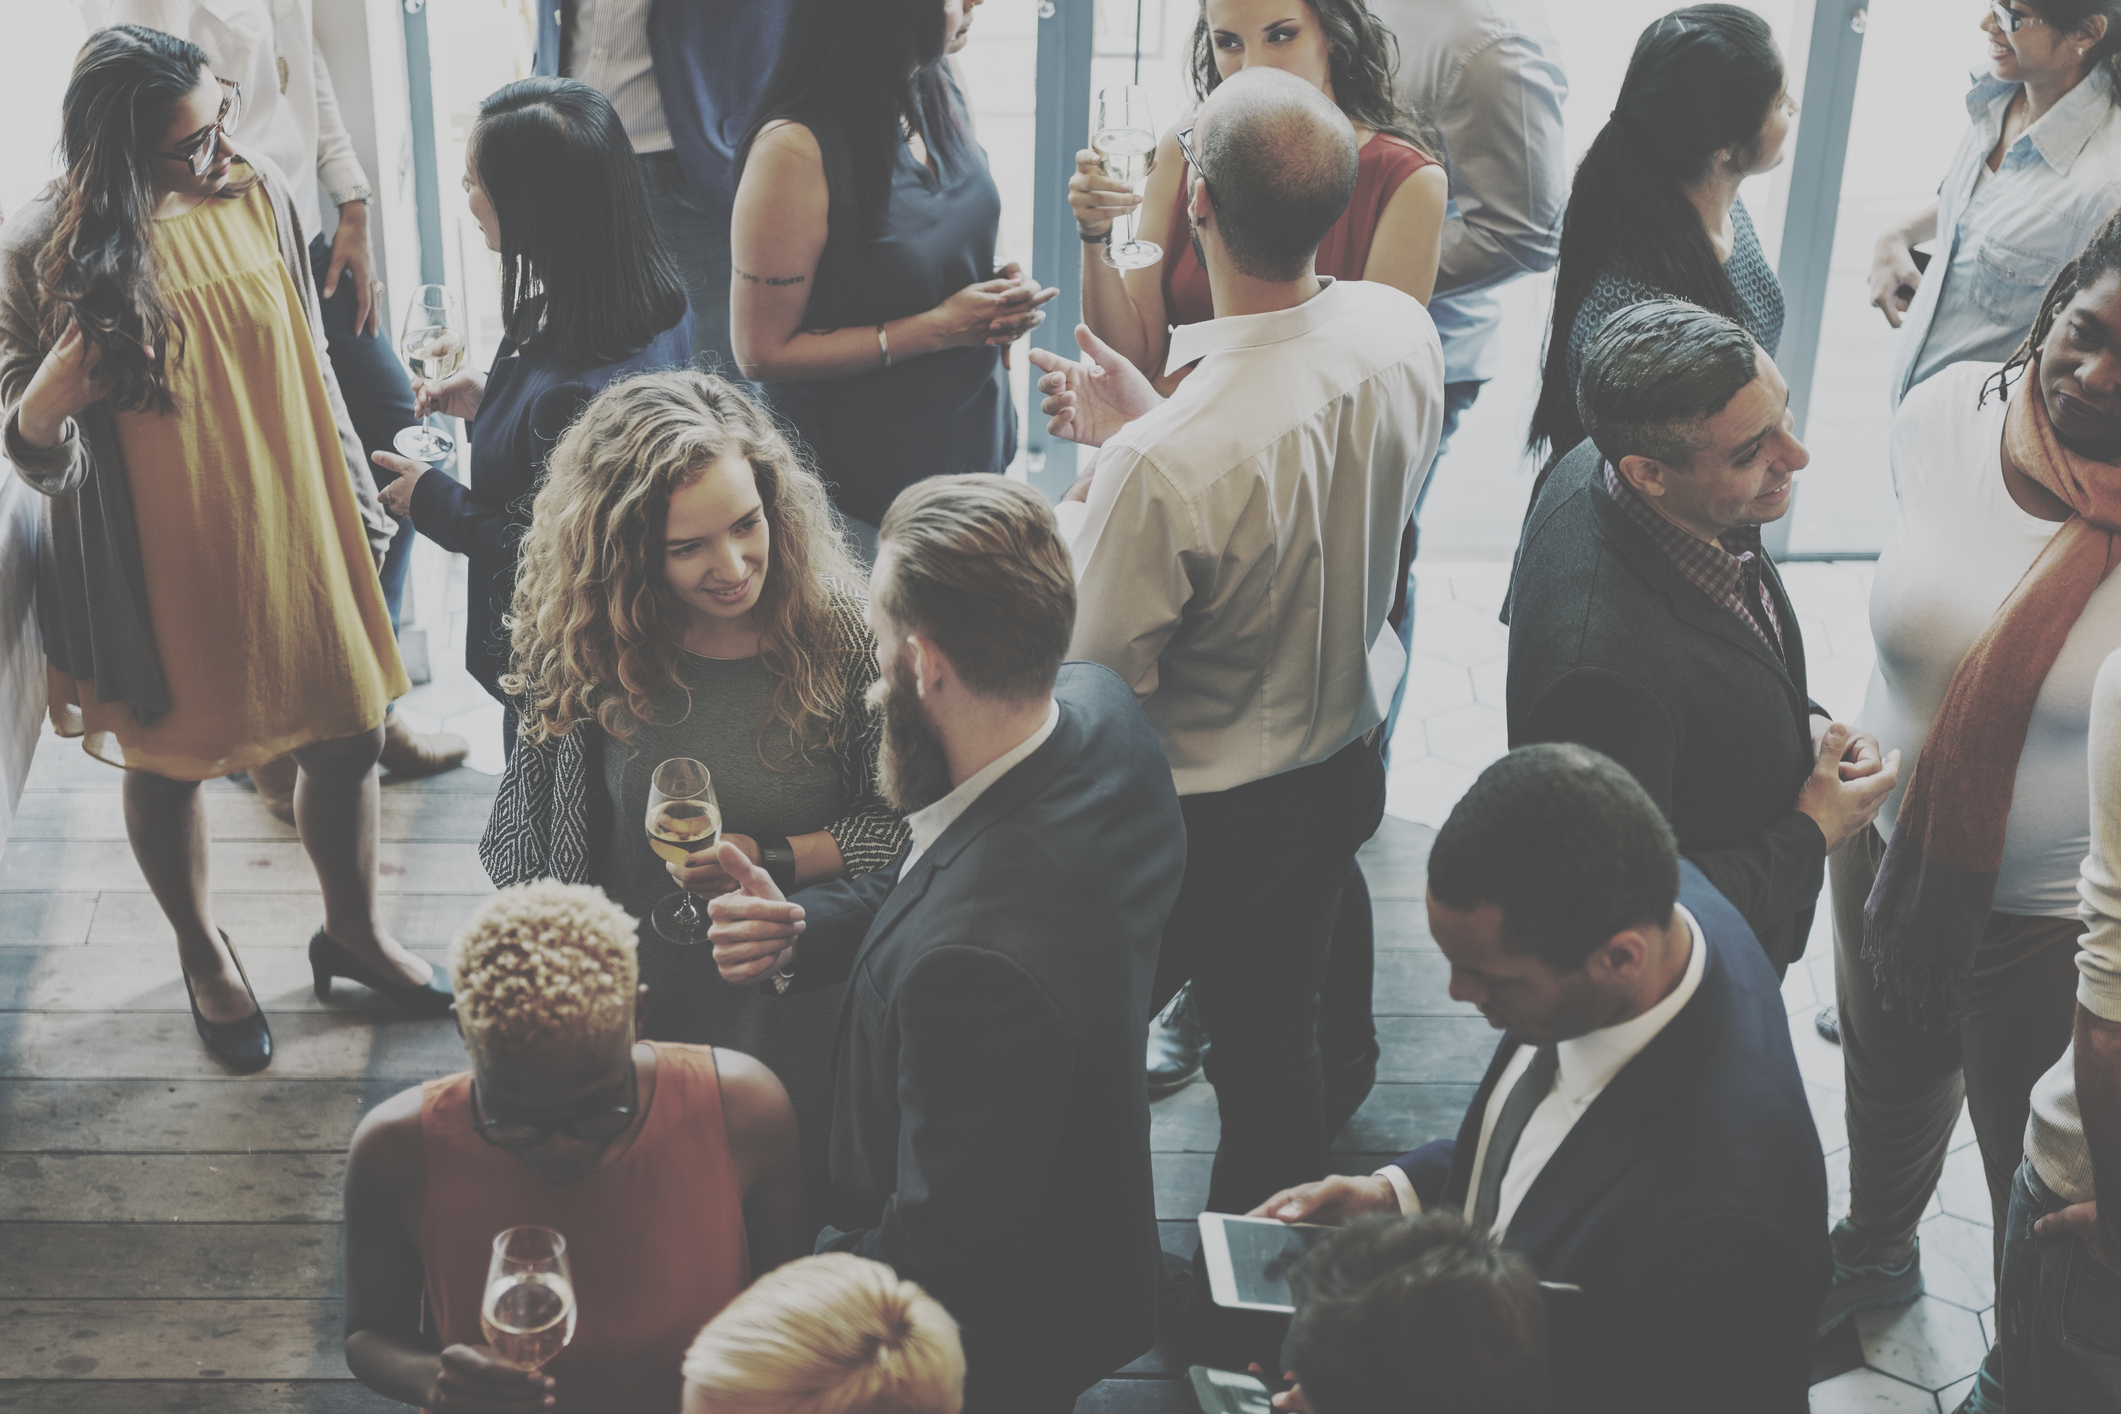 Group of men and women talking in casual cocktail setting forming SB and DBE partnerships